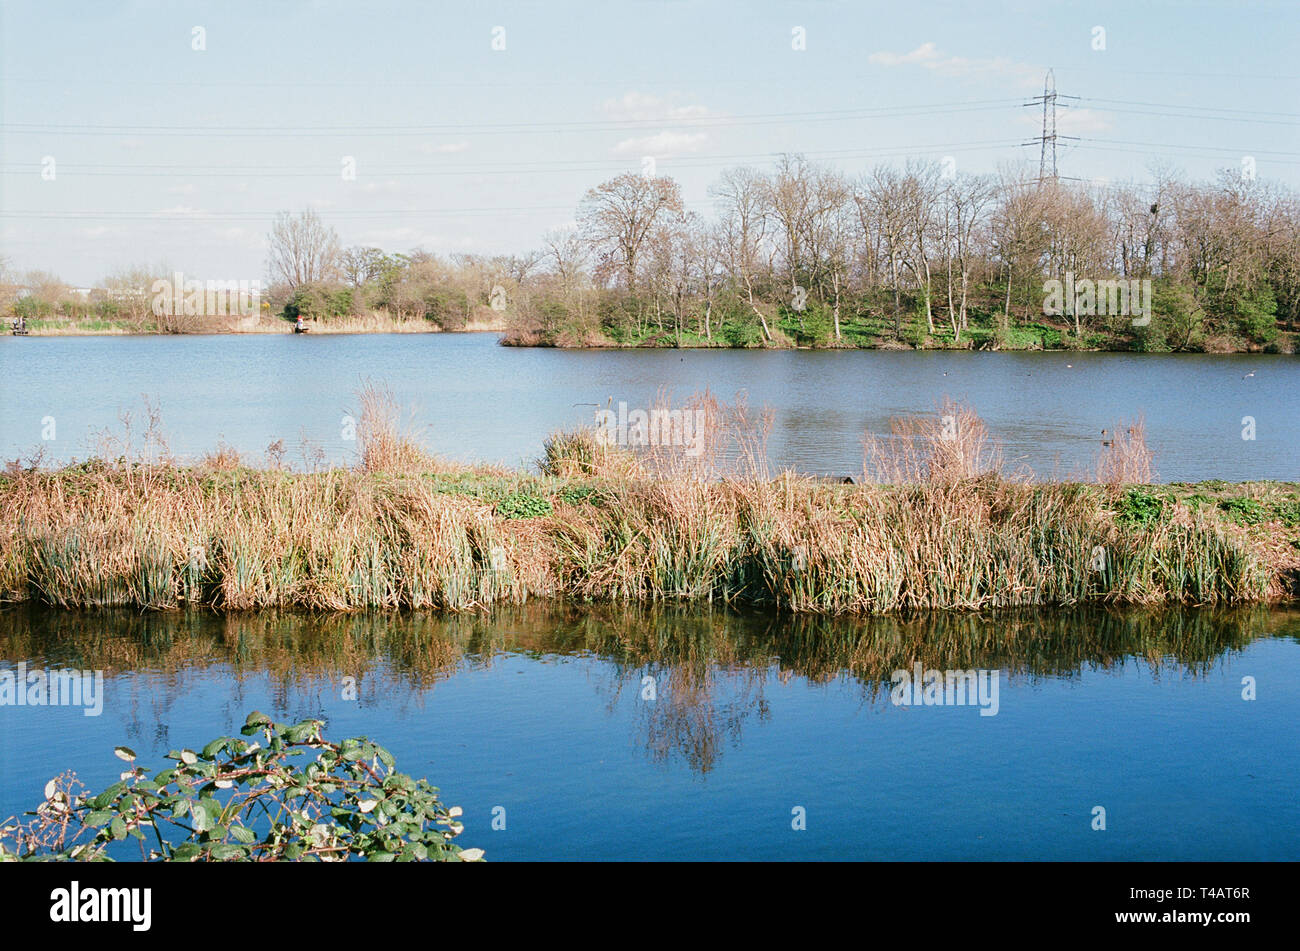 Reservoir No1 and Coppermill Stream in springtime, in Walthamstow Wetlands Nature Reserve, North East London UK - Stock Image